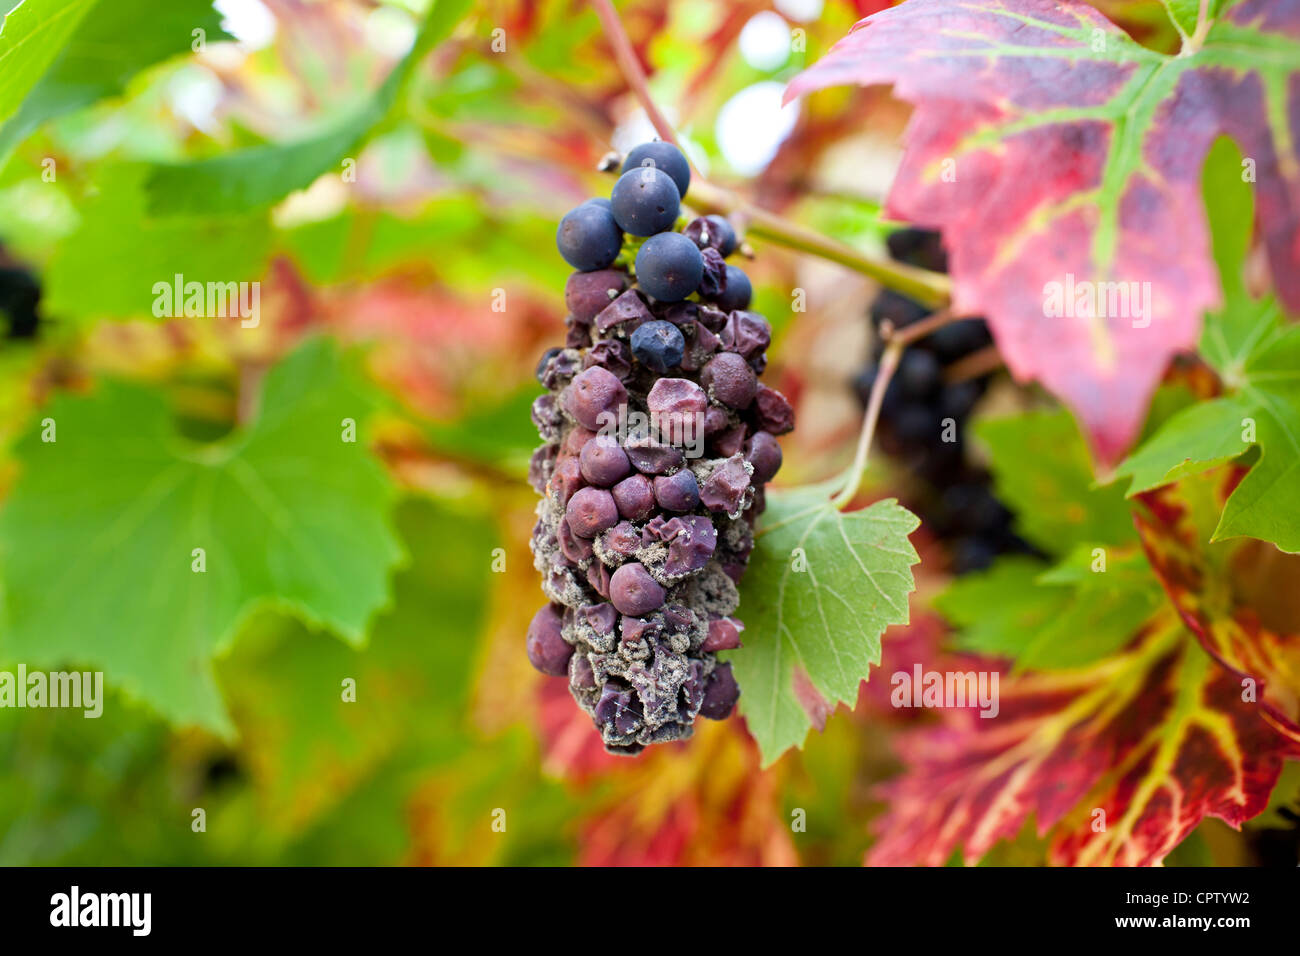 Withered grapes on a grapevine in country garden at Swinbrook in The Cotswolds, Oxfordshire, UK - Stock Image